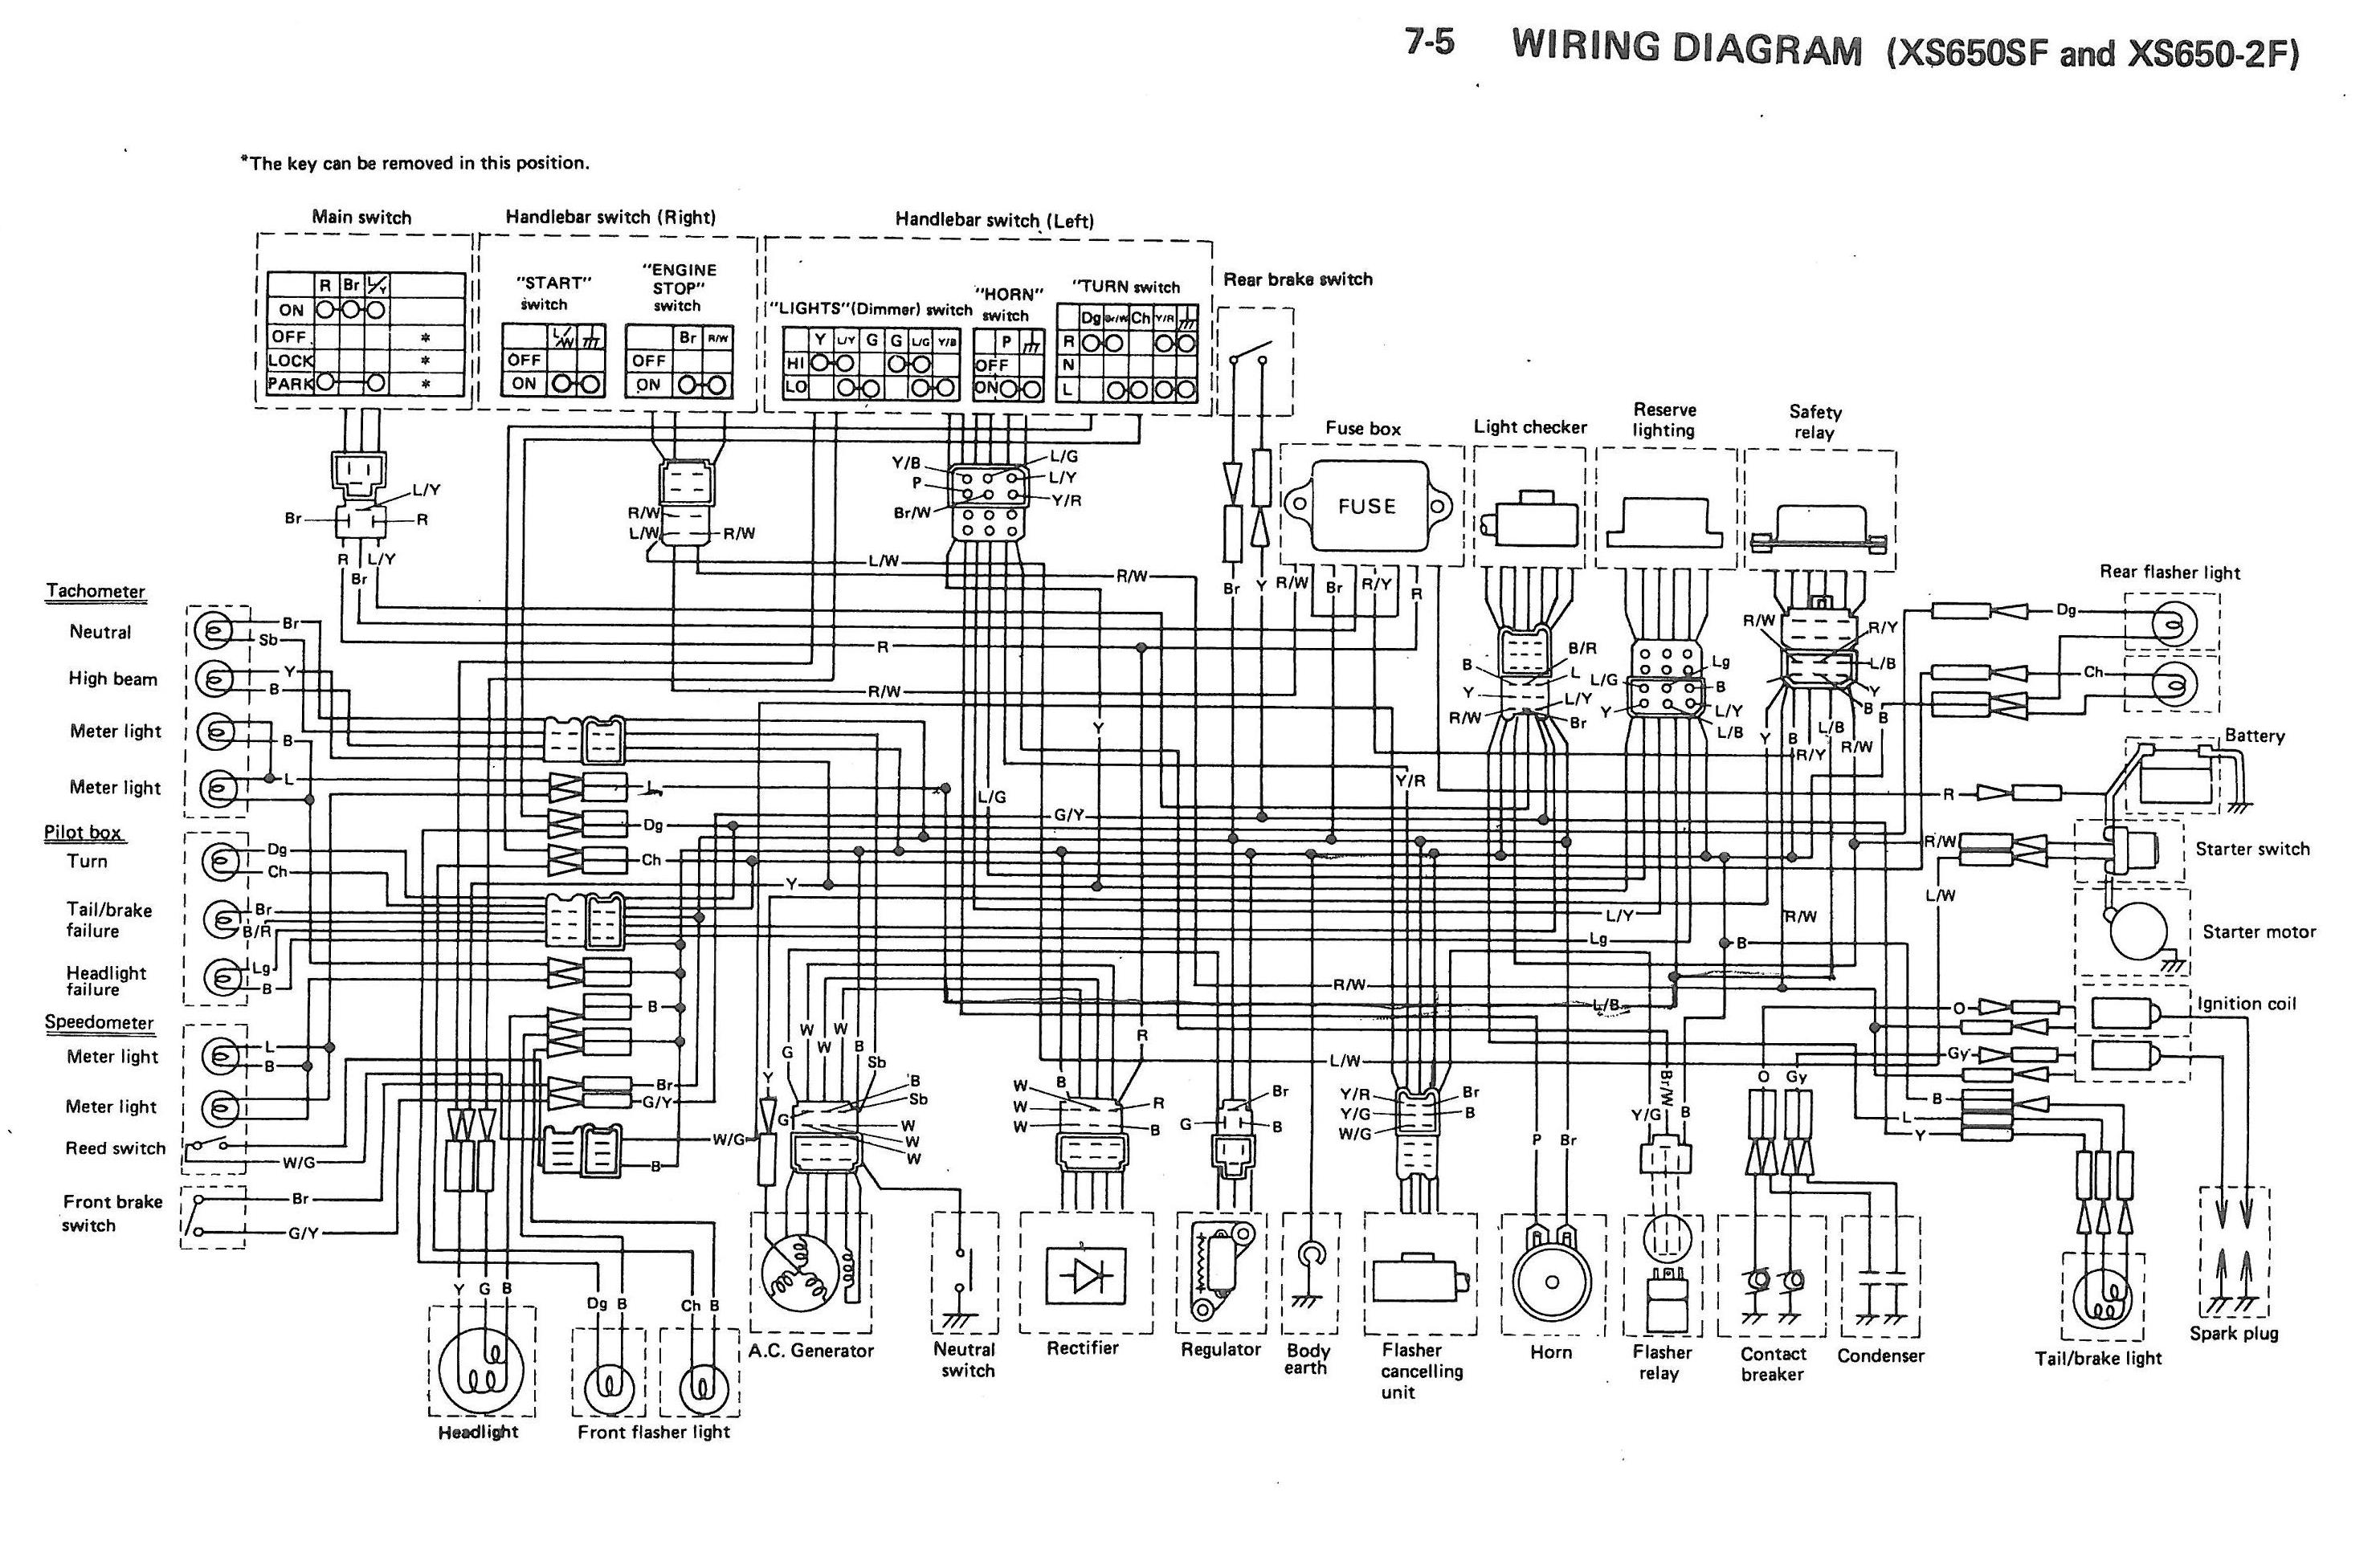 Wiring Diagram 1983 Yamaha It Archive Of Automotive For Moto 4 250 Wire Diagrams 1979 Xs650 Schematics Rh Thyl Co Uk